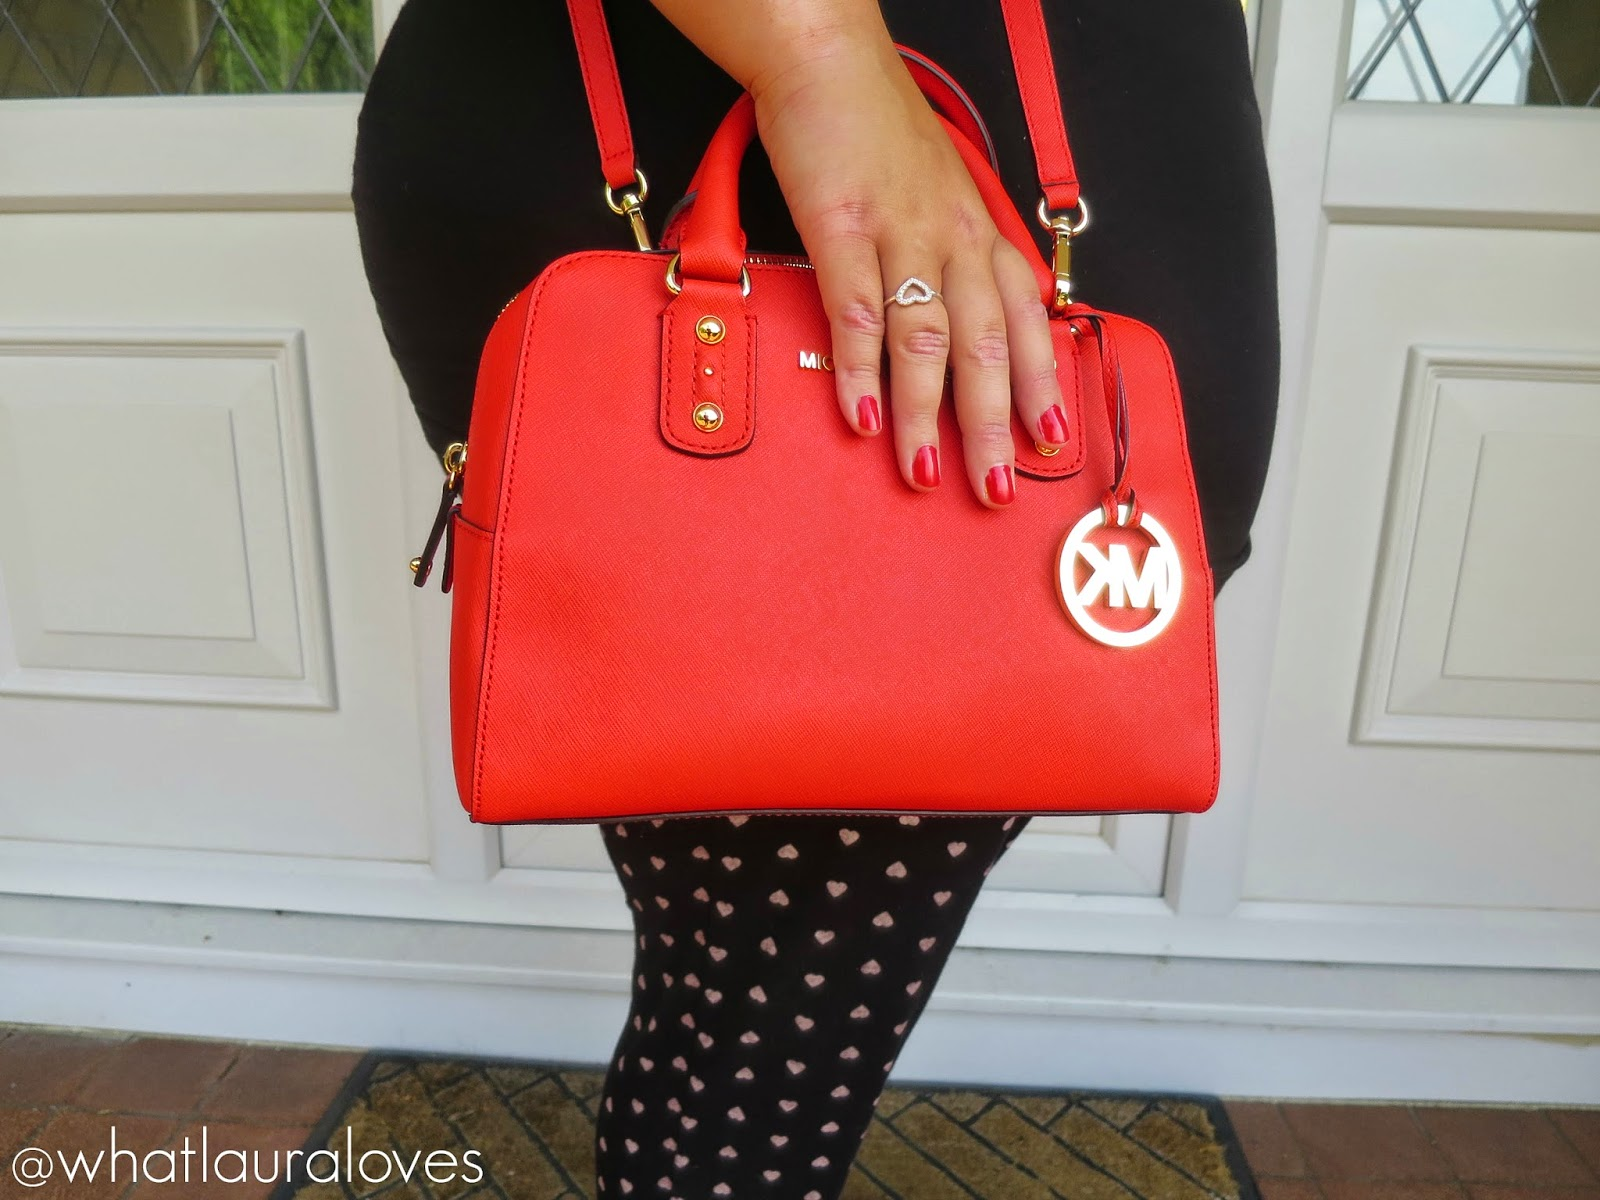 Heart Print Clothing Michael Kors Mandarin Bag